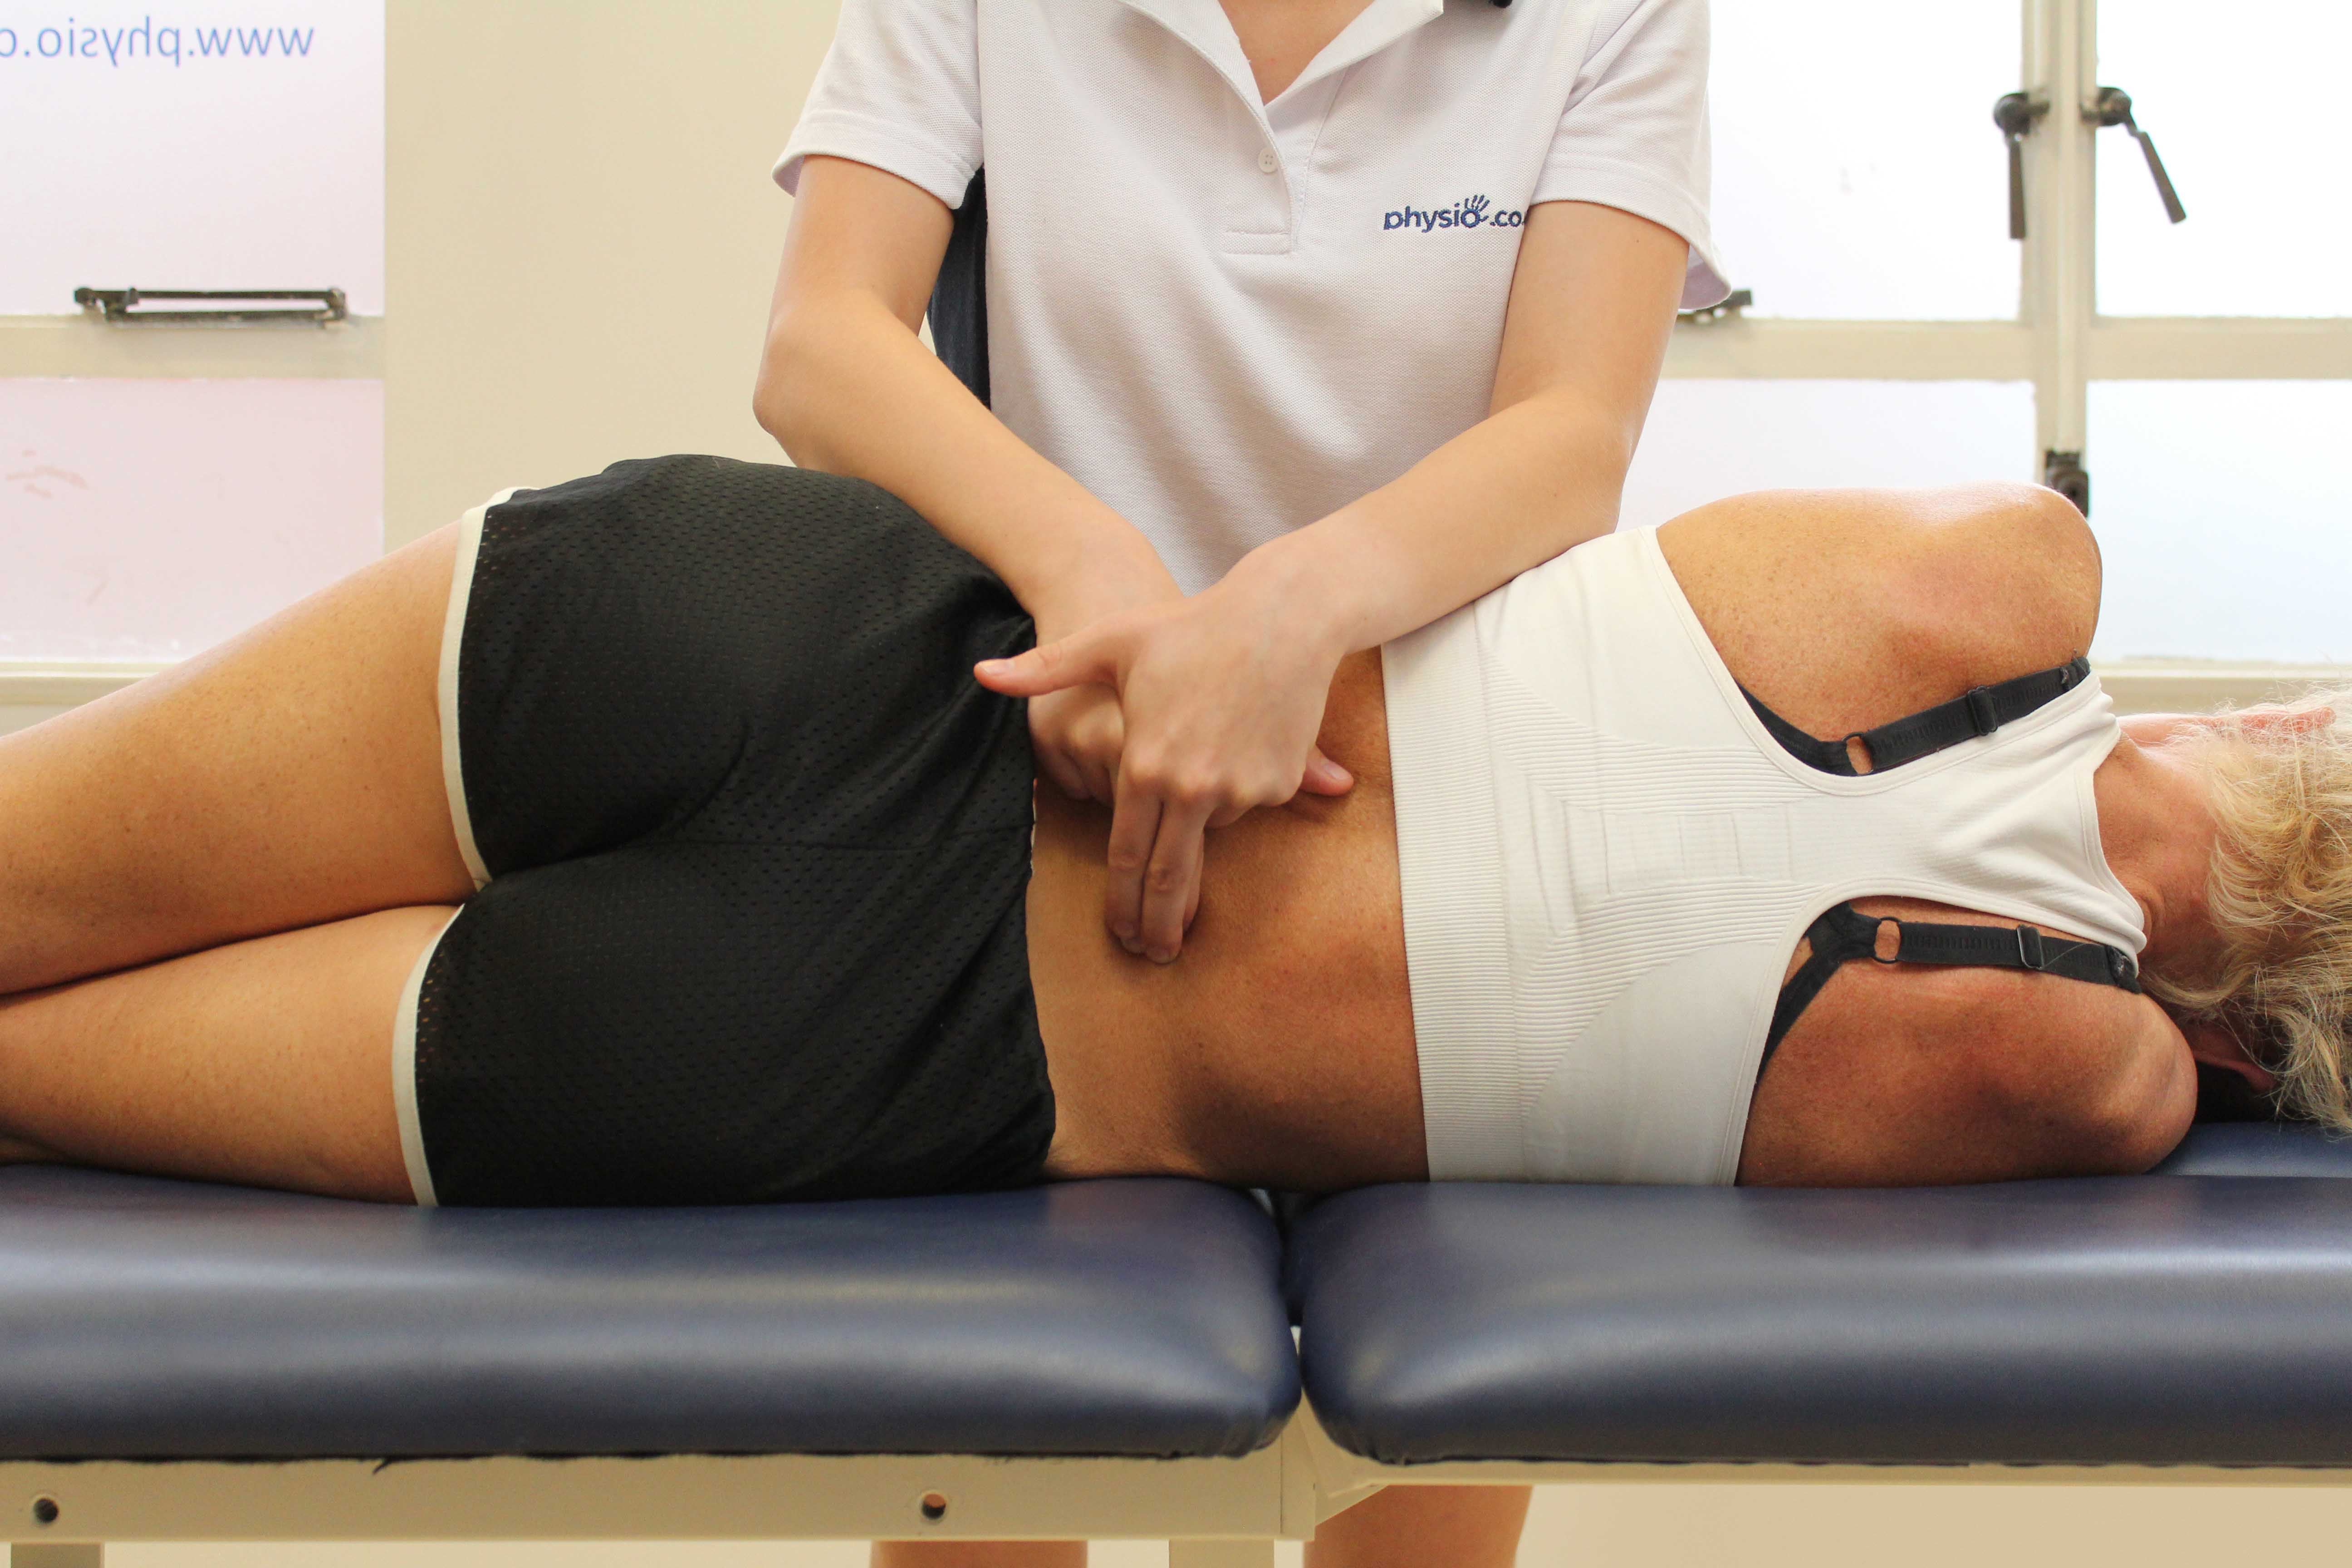 Soft tissue massage of the upper arm and shoulder by a specialist massage therapist